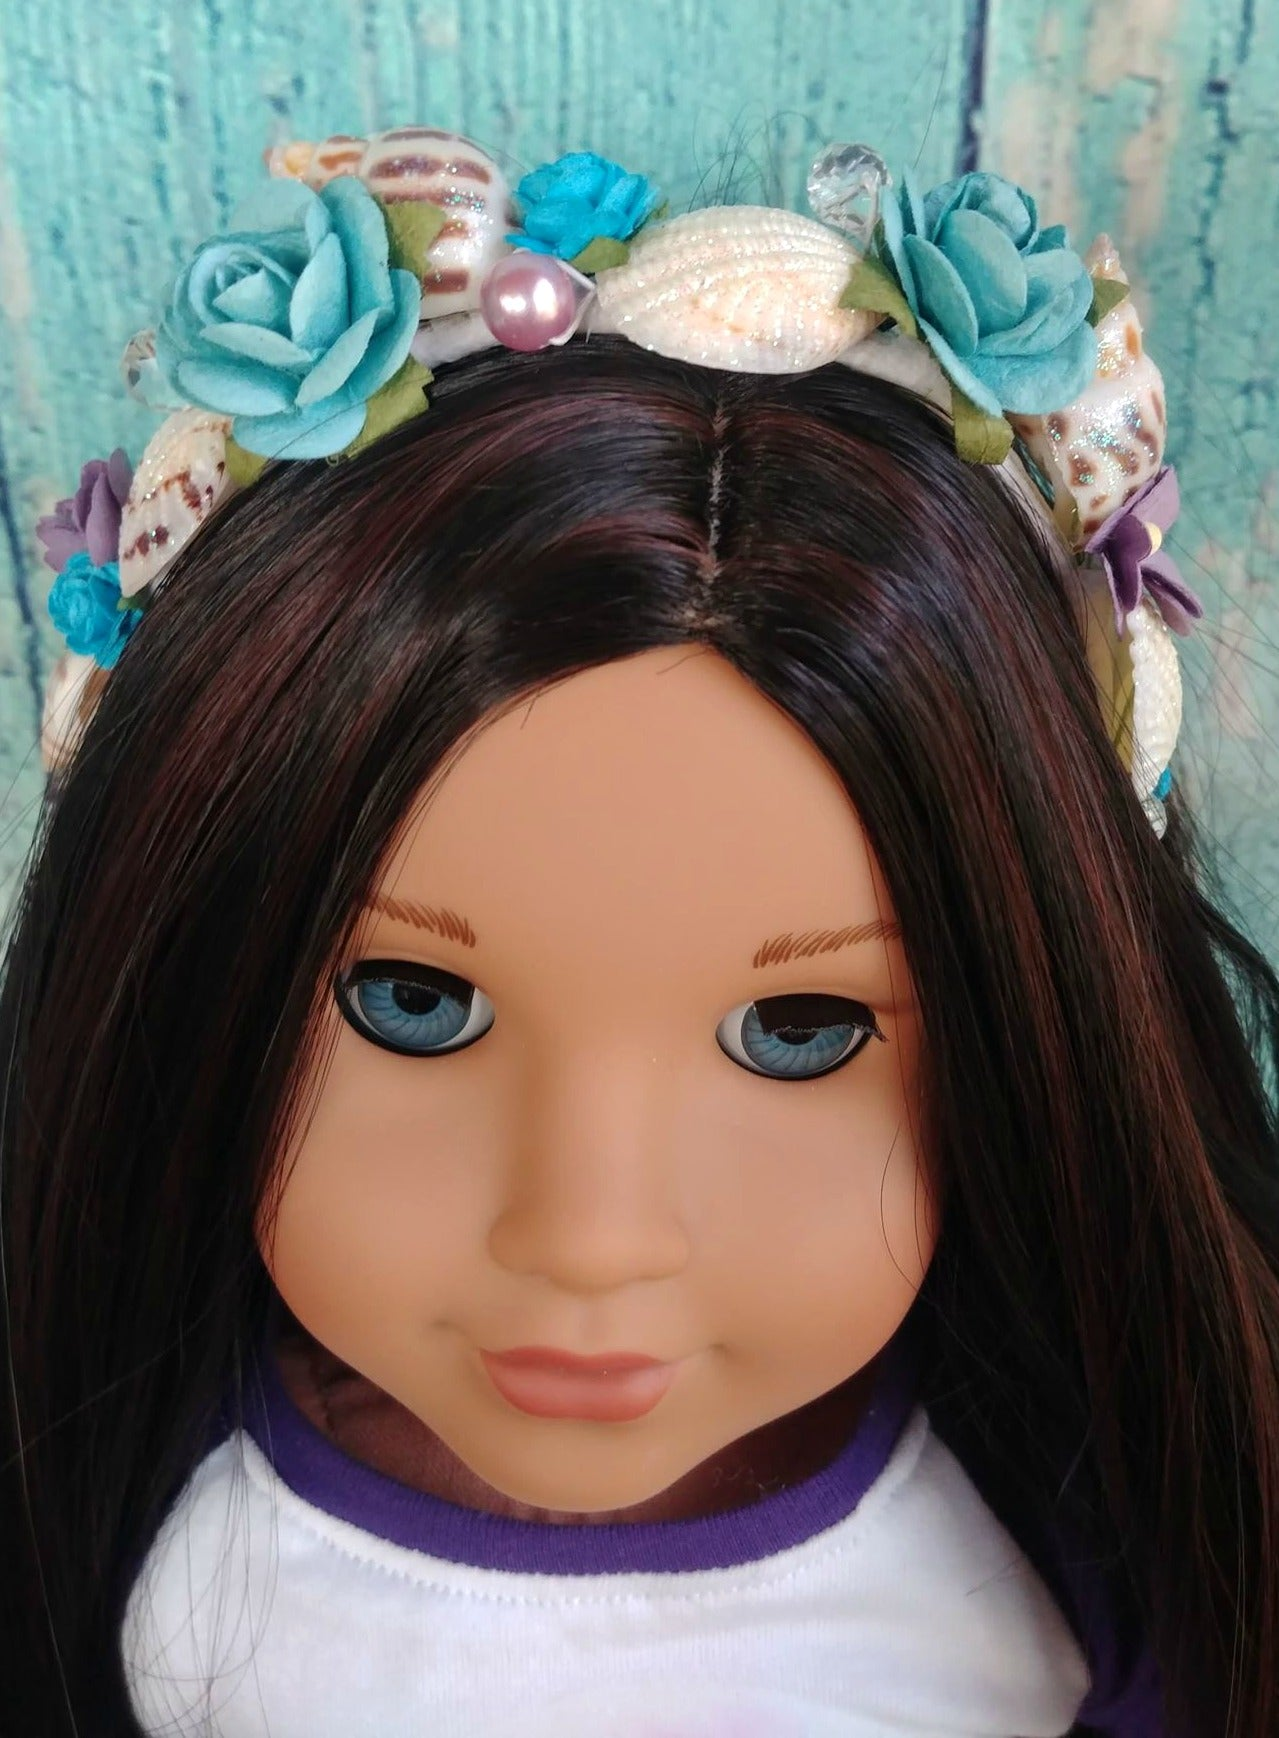 Zazou Dolls Exclusive Mermaid headband for 18 Inch dolls such as Journey, OG and American Girl